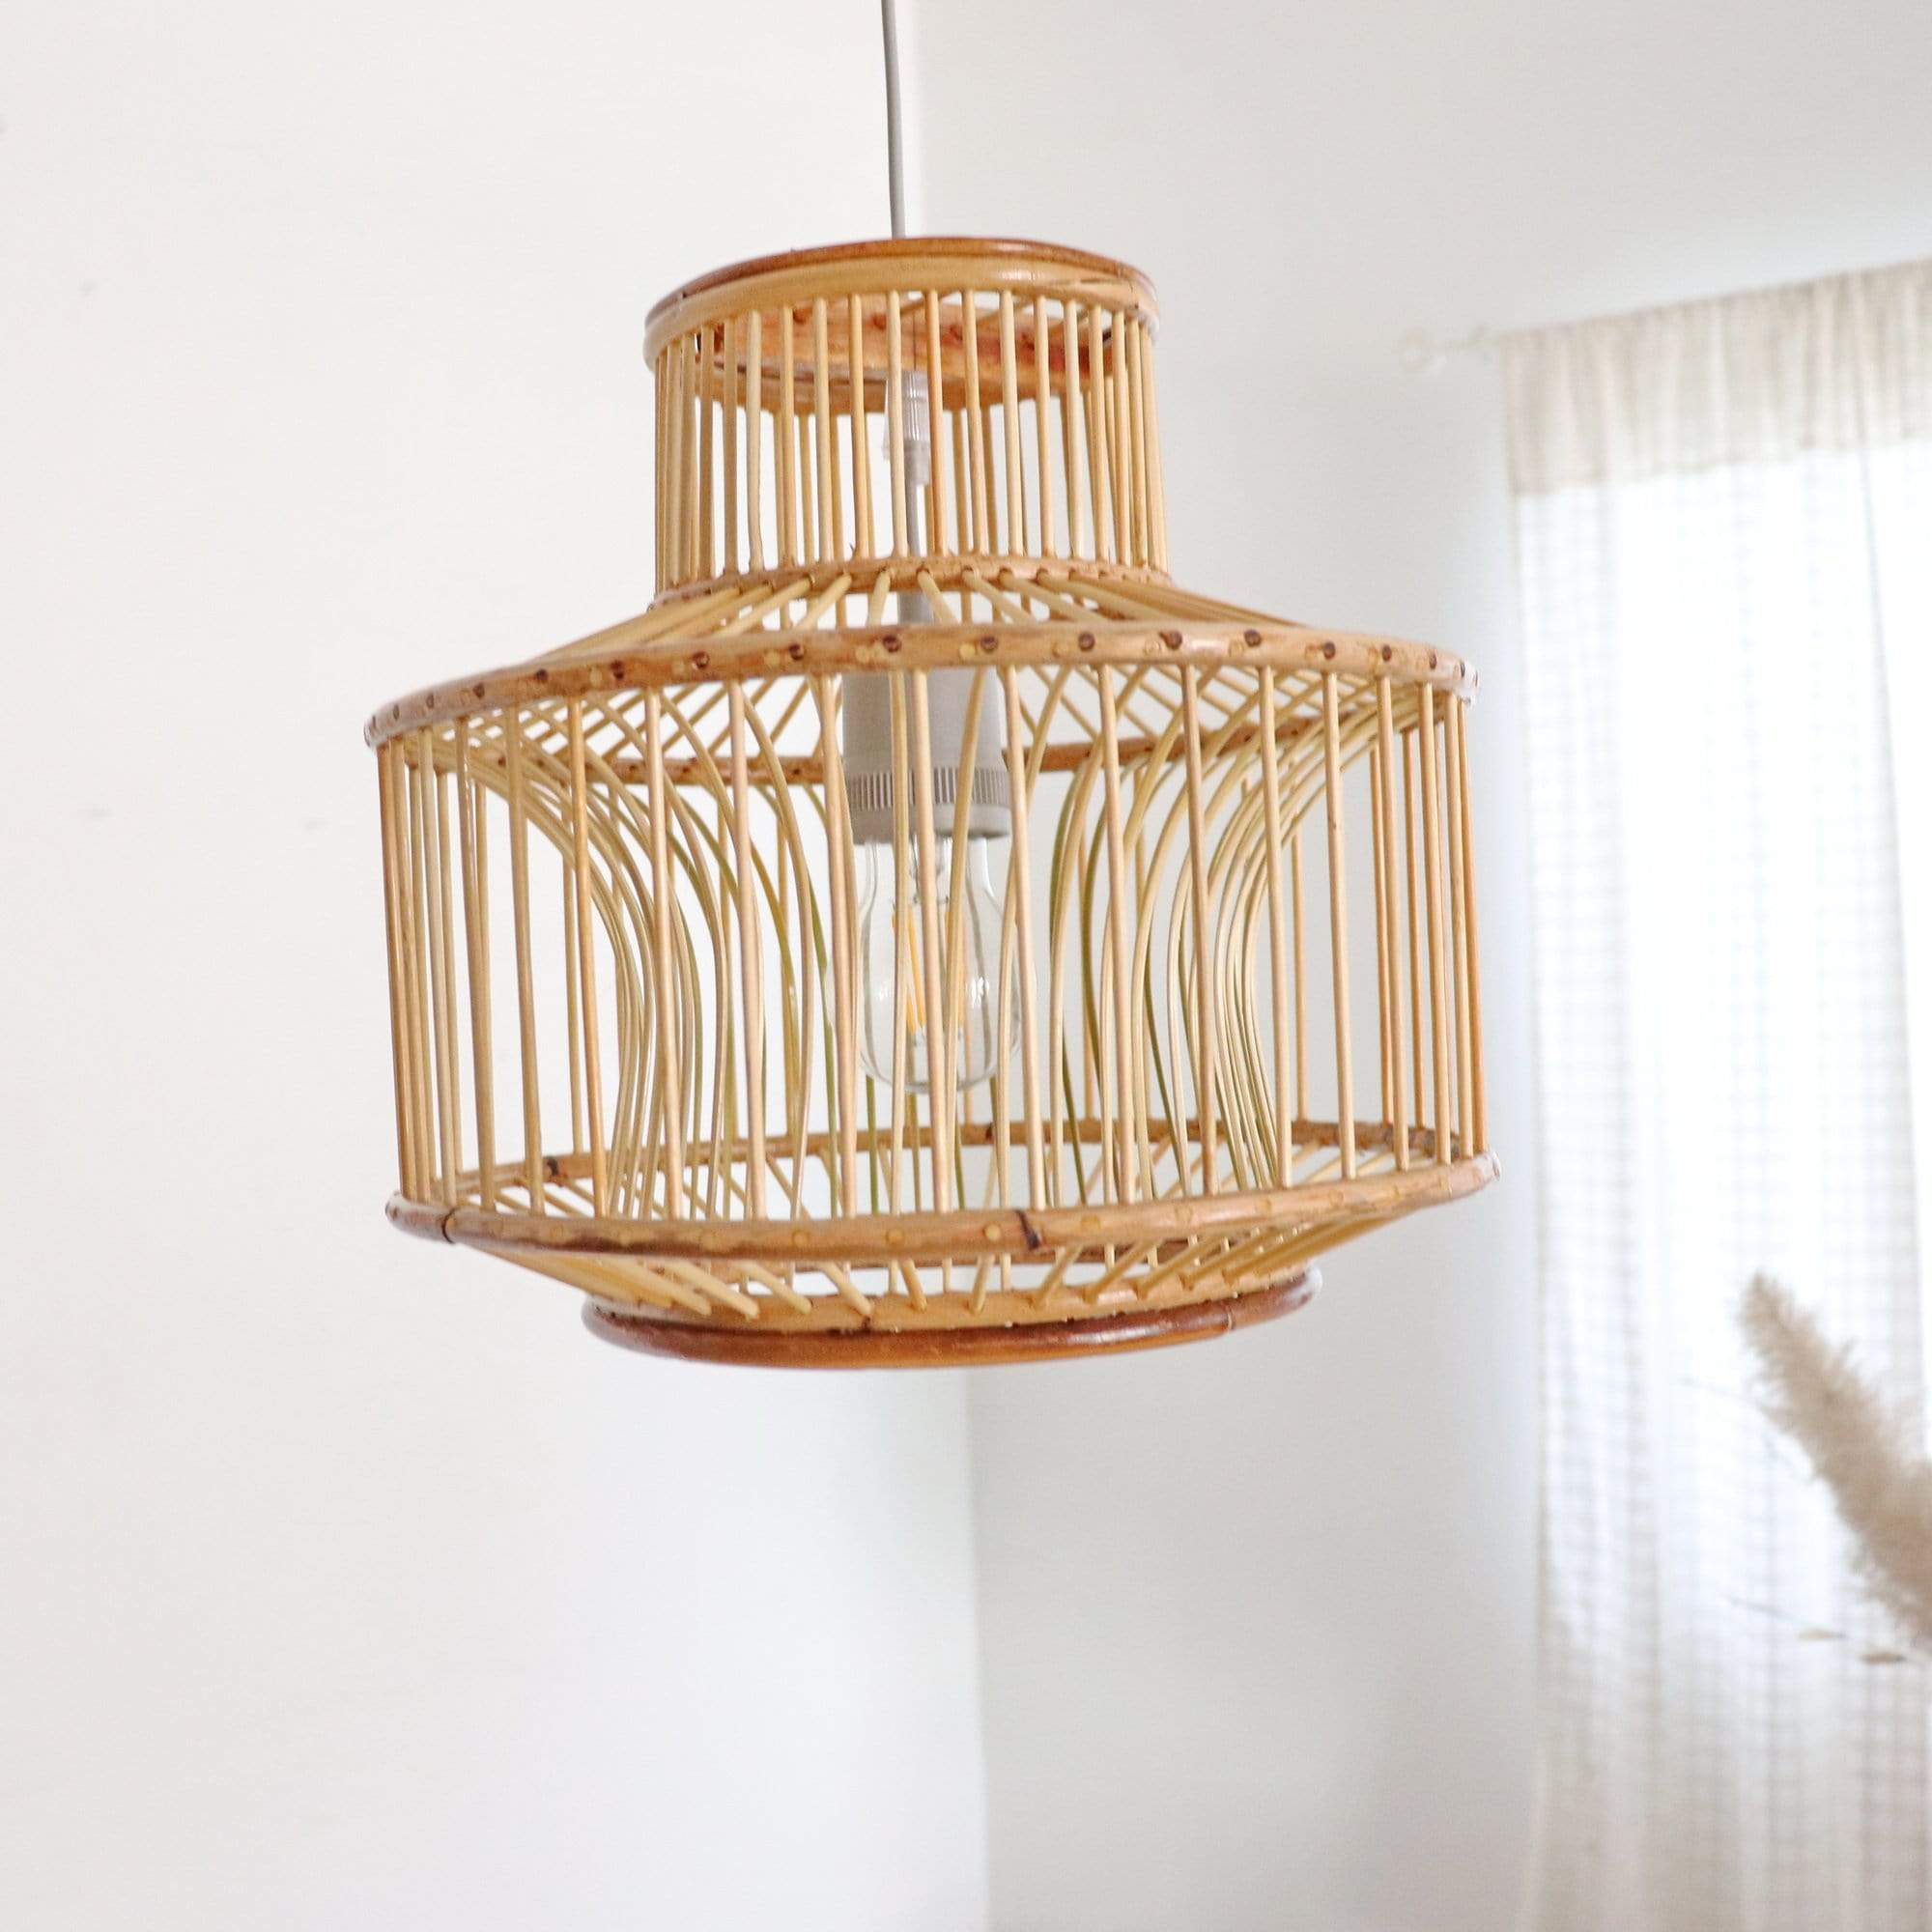 THAIHOMESHOP Bamboo Pendant Light TAWAN - BAMBOO PENDANT LIGHT